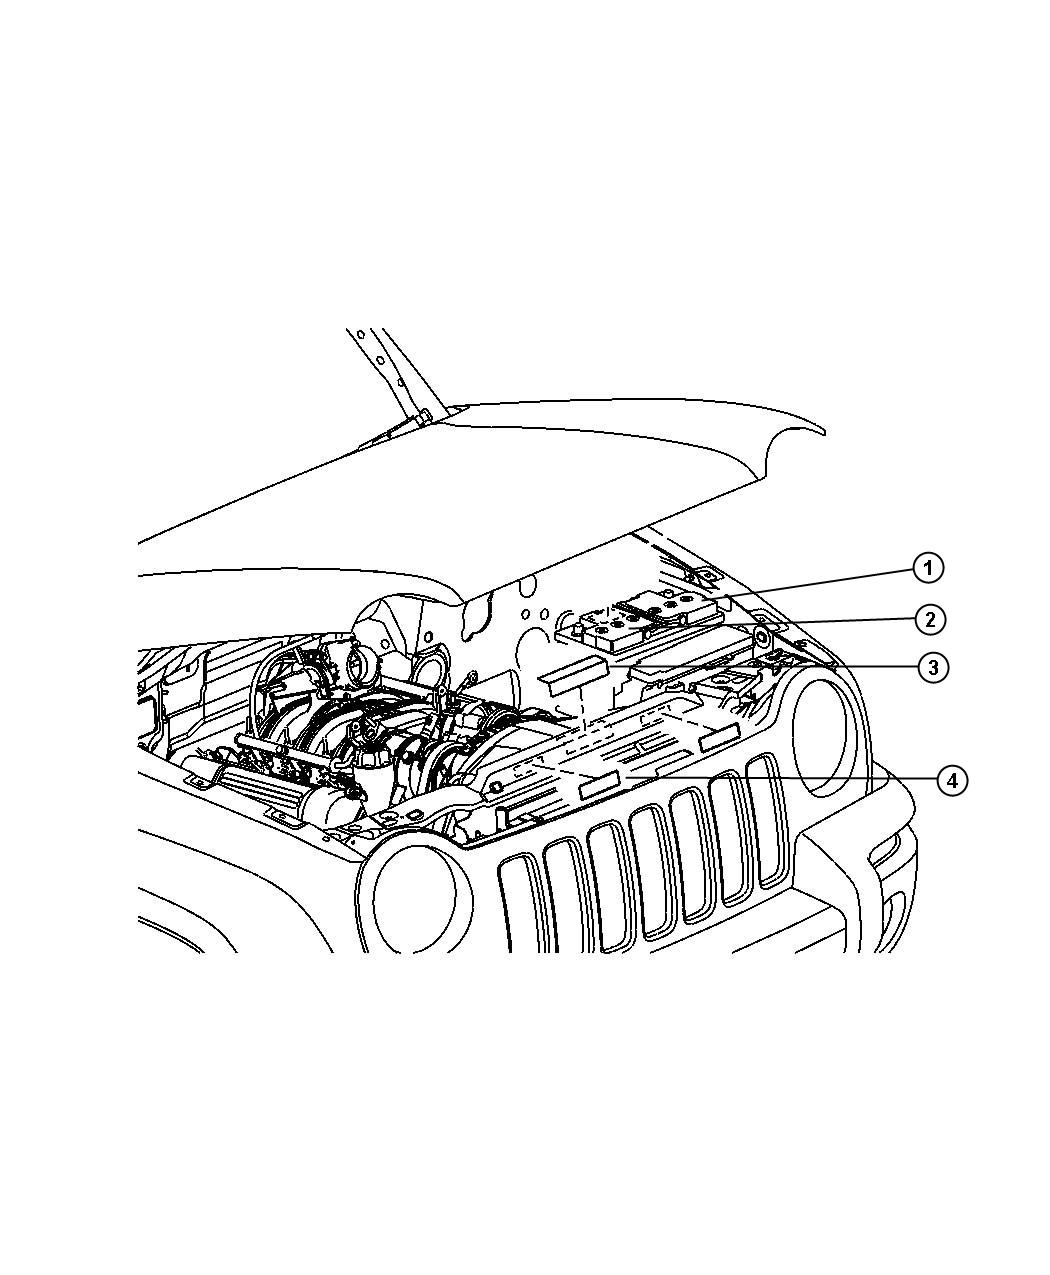 Jeep Liberty Label Battery Battery Warning Export